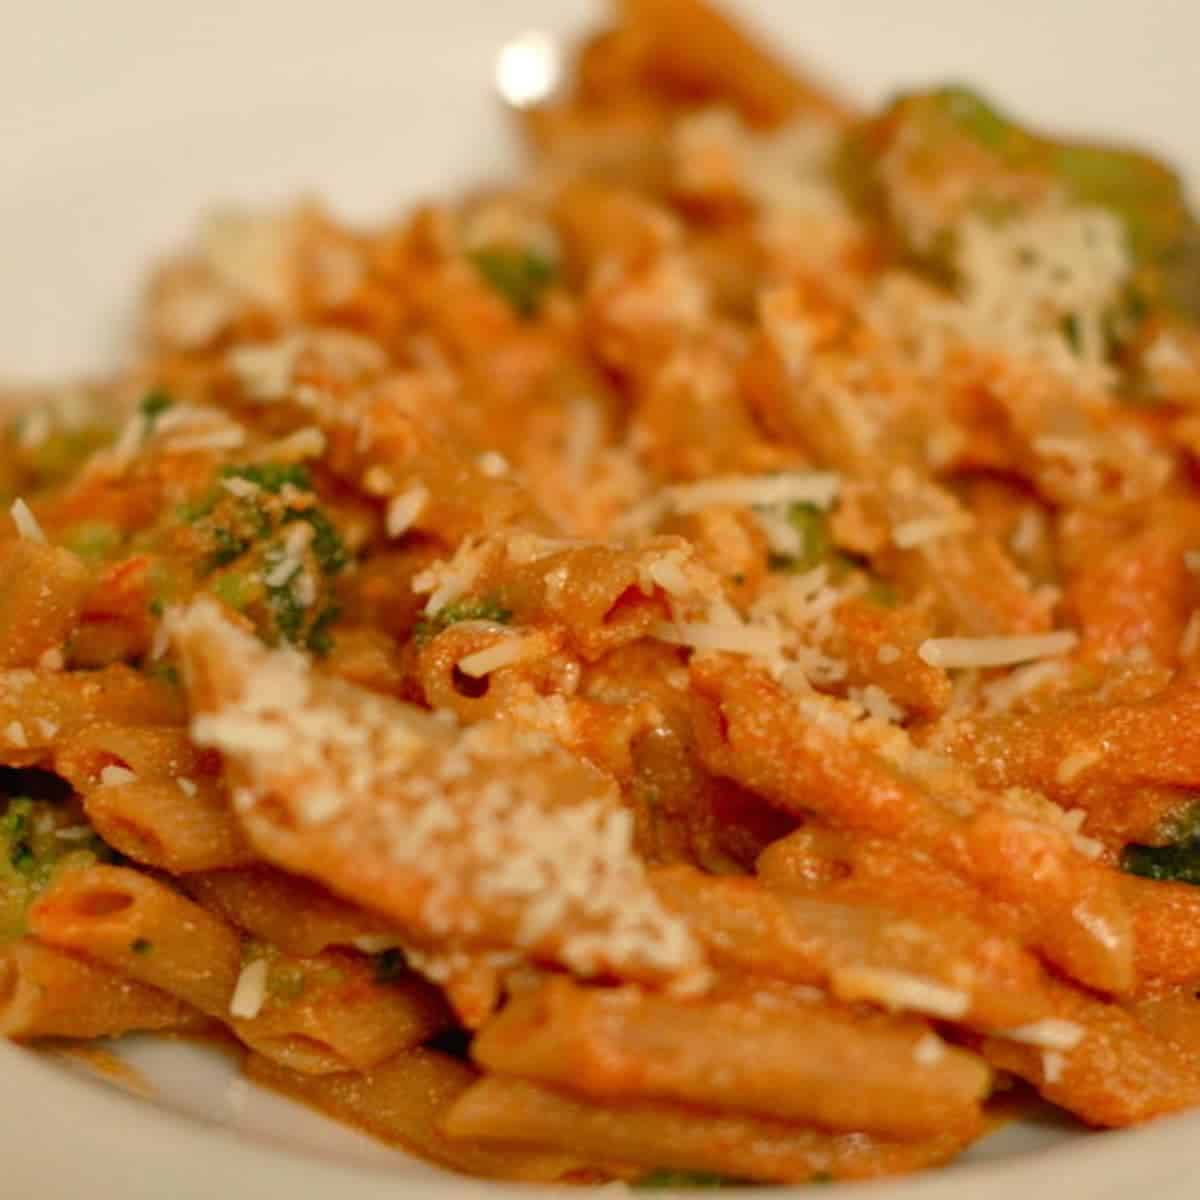 Tomato Ricotta Pasta with Broccoli and cheese shreds.